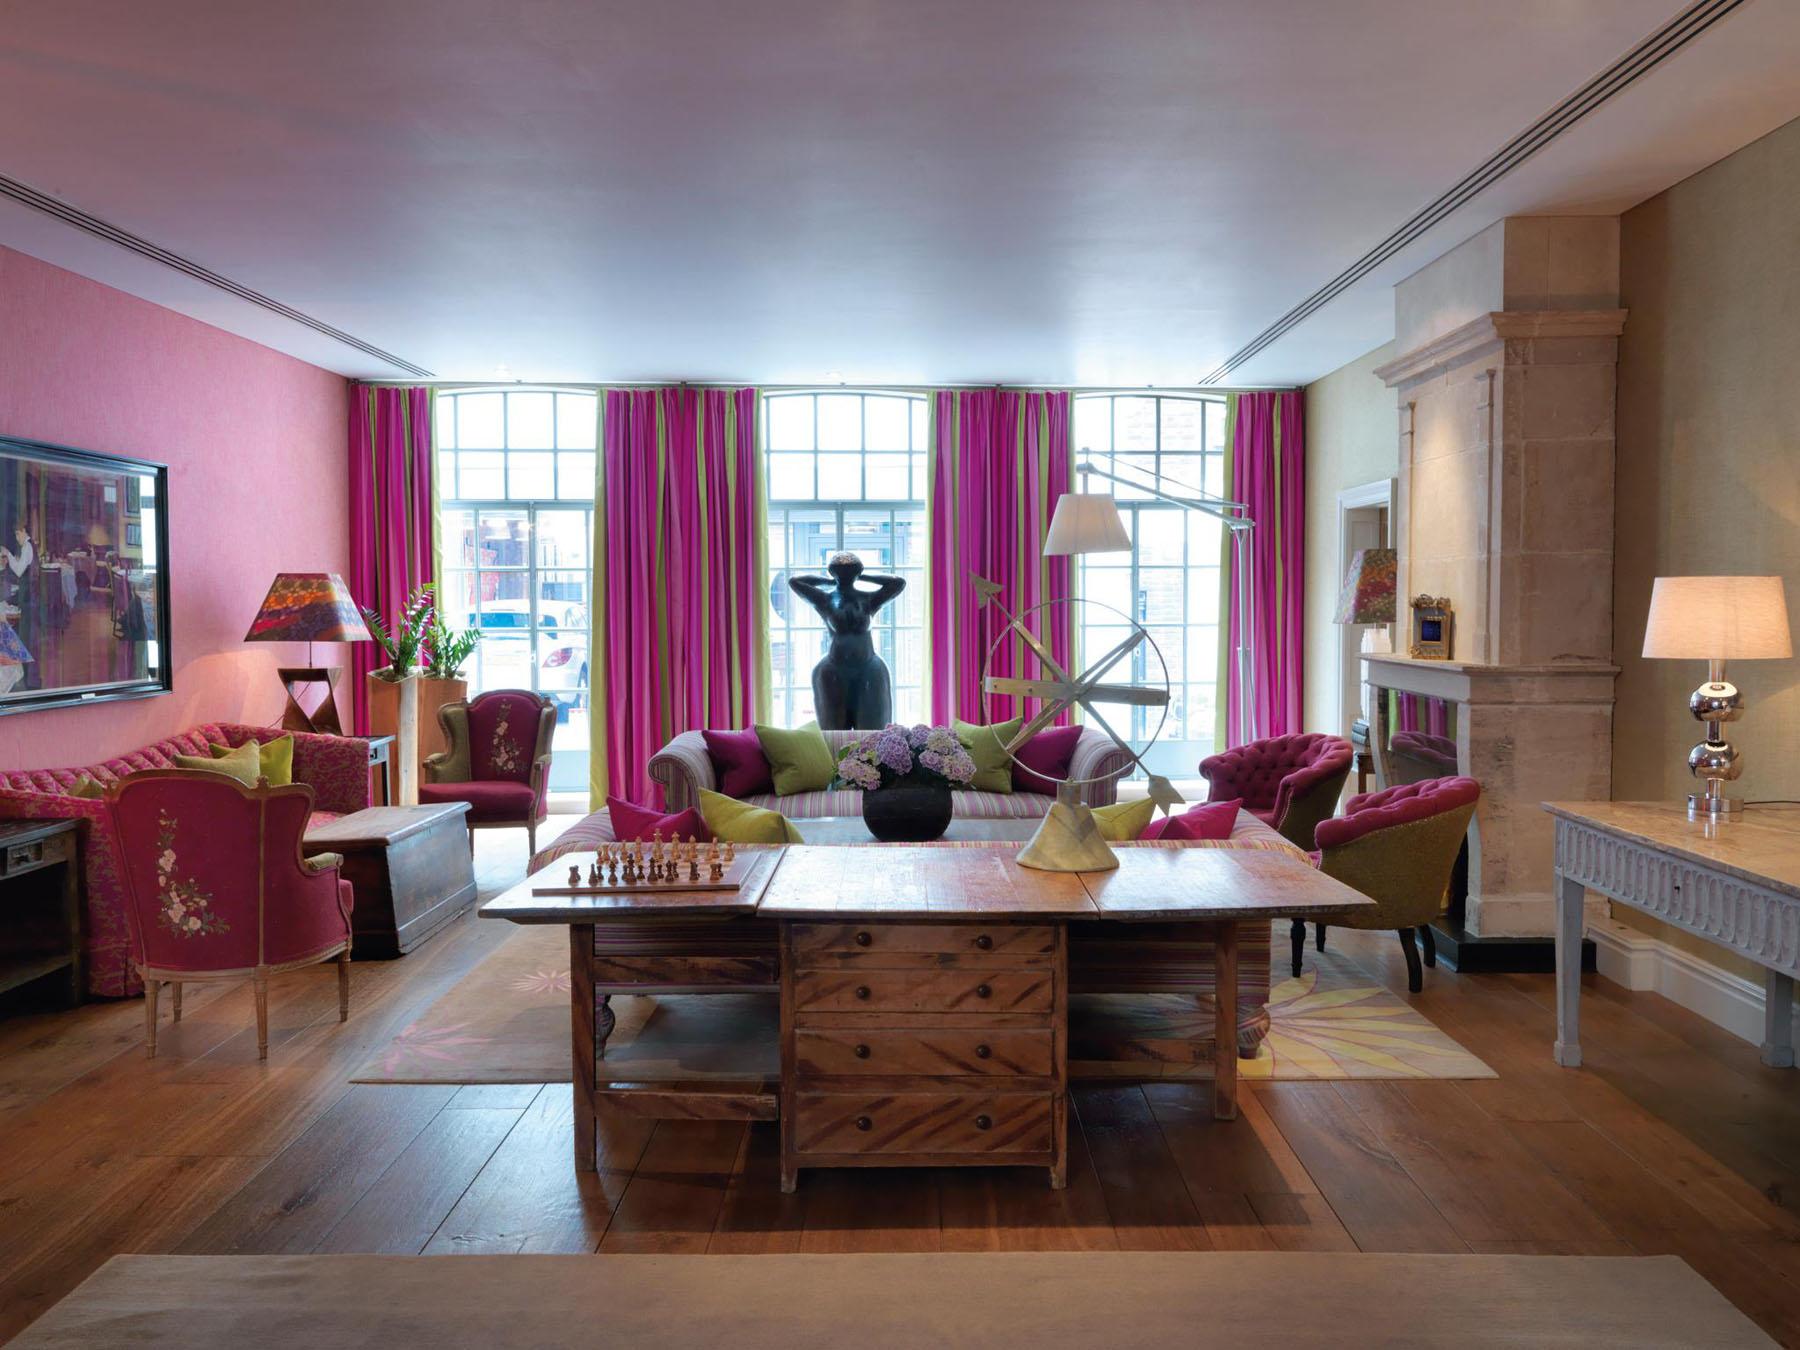 Trendy Soho Hotel London Interiors  iDesignArch  Interior Design Architecture  Interior